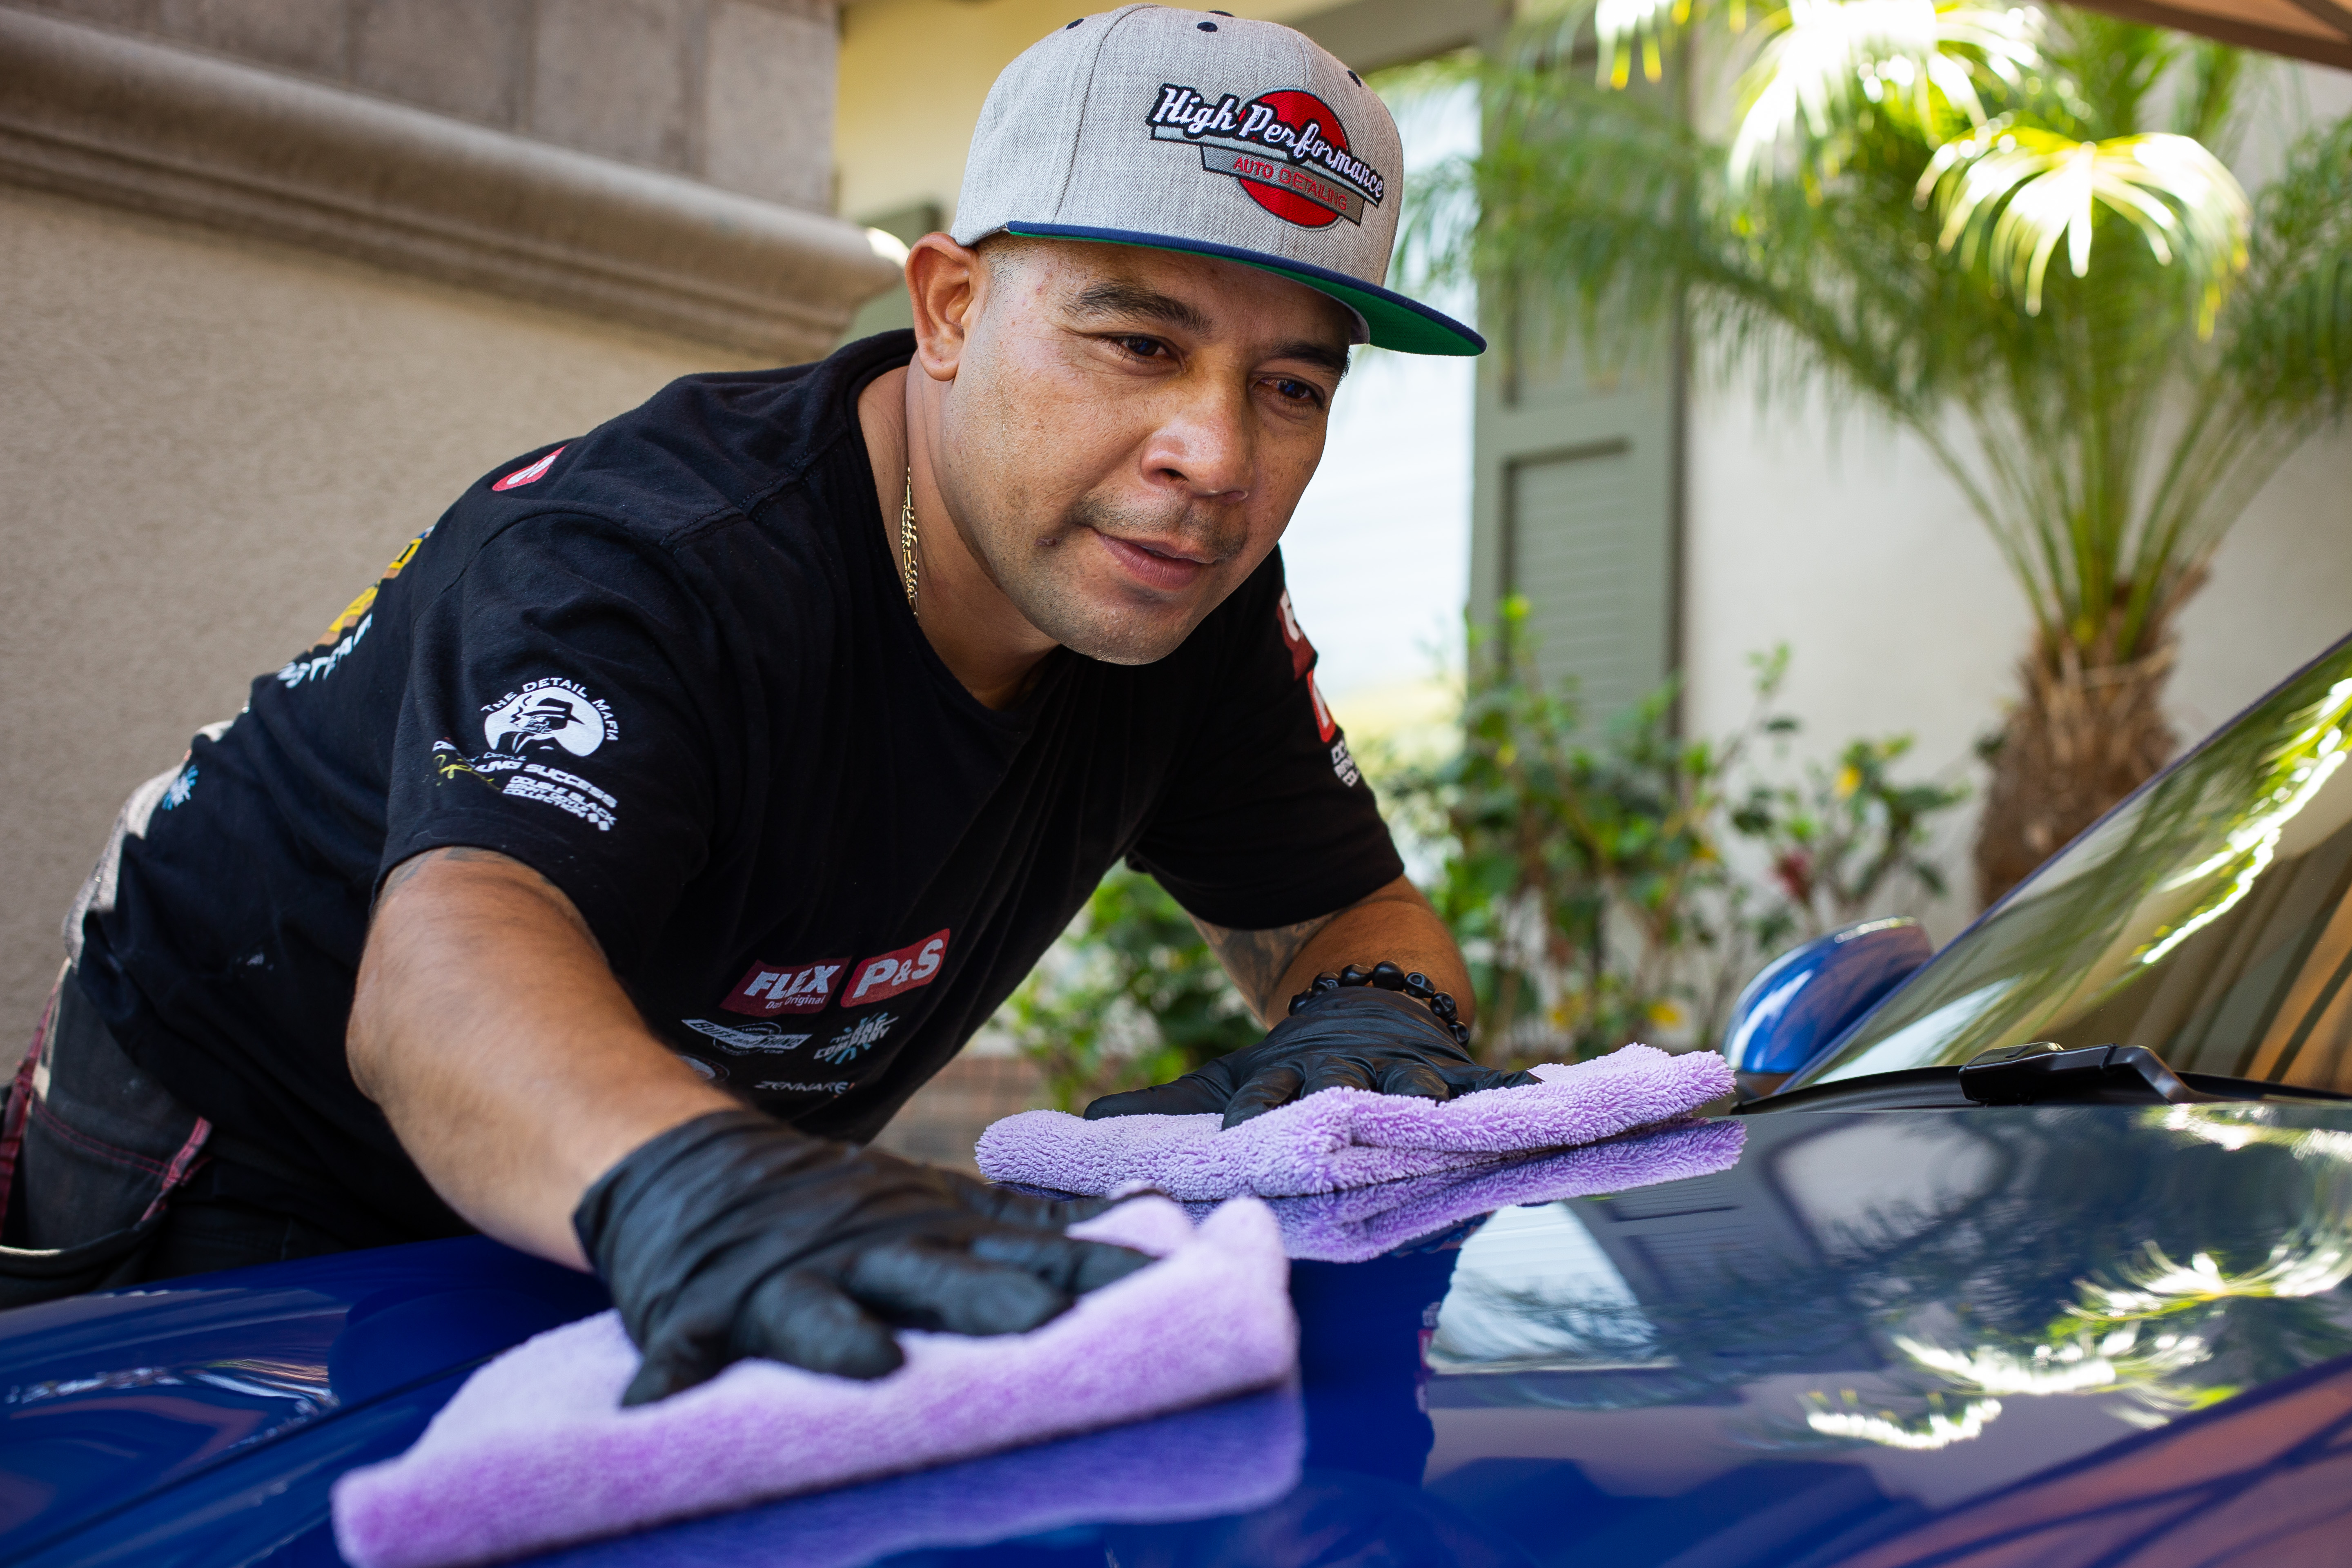 Encinitas detailer joins team to clean up retired Air Force One